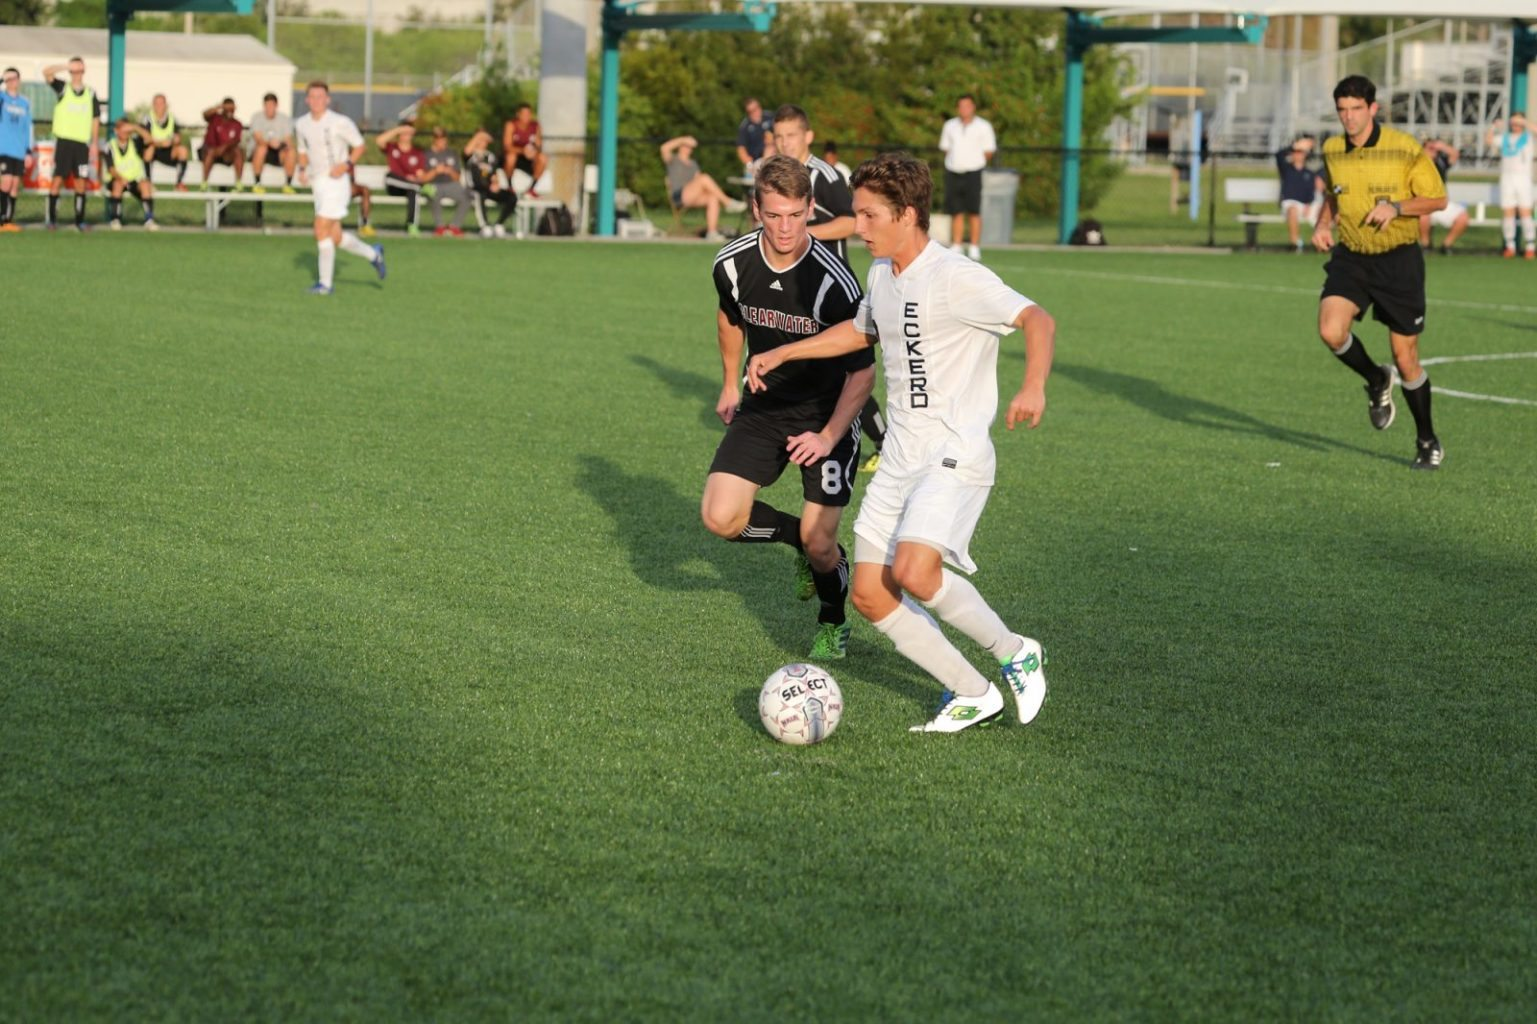 Men's soccer team playing in a game against Clearwater